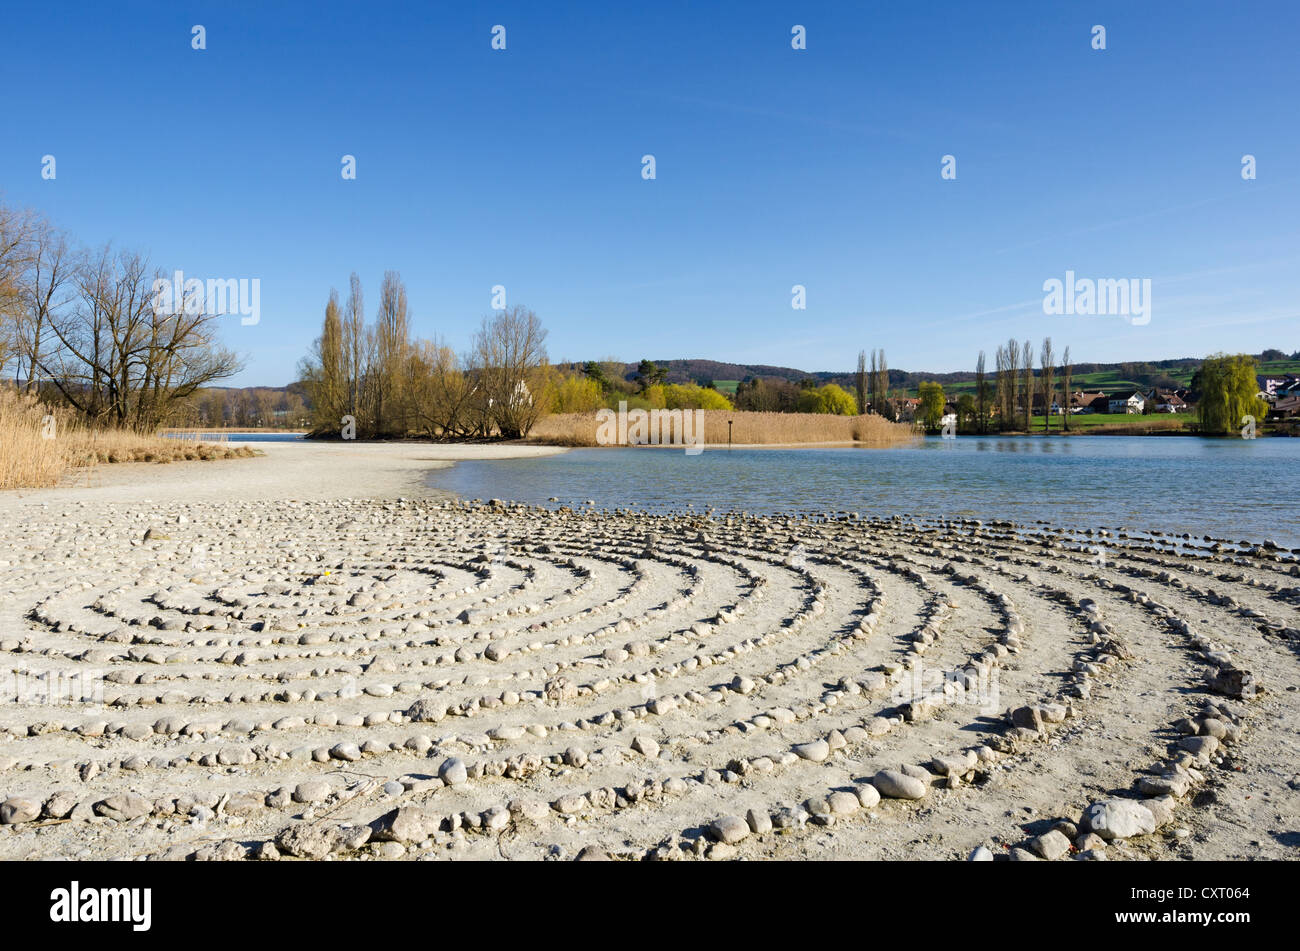 Stone labyrinth on Werd island, can be used for meditation, Werd island at the back, Canton of Schaffhausen, Switzerland, - Stock Image